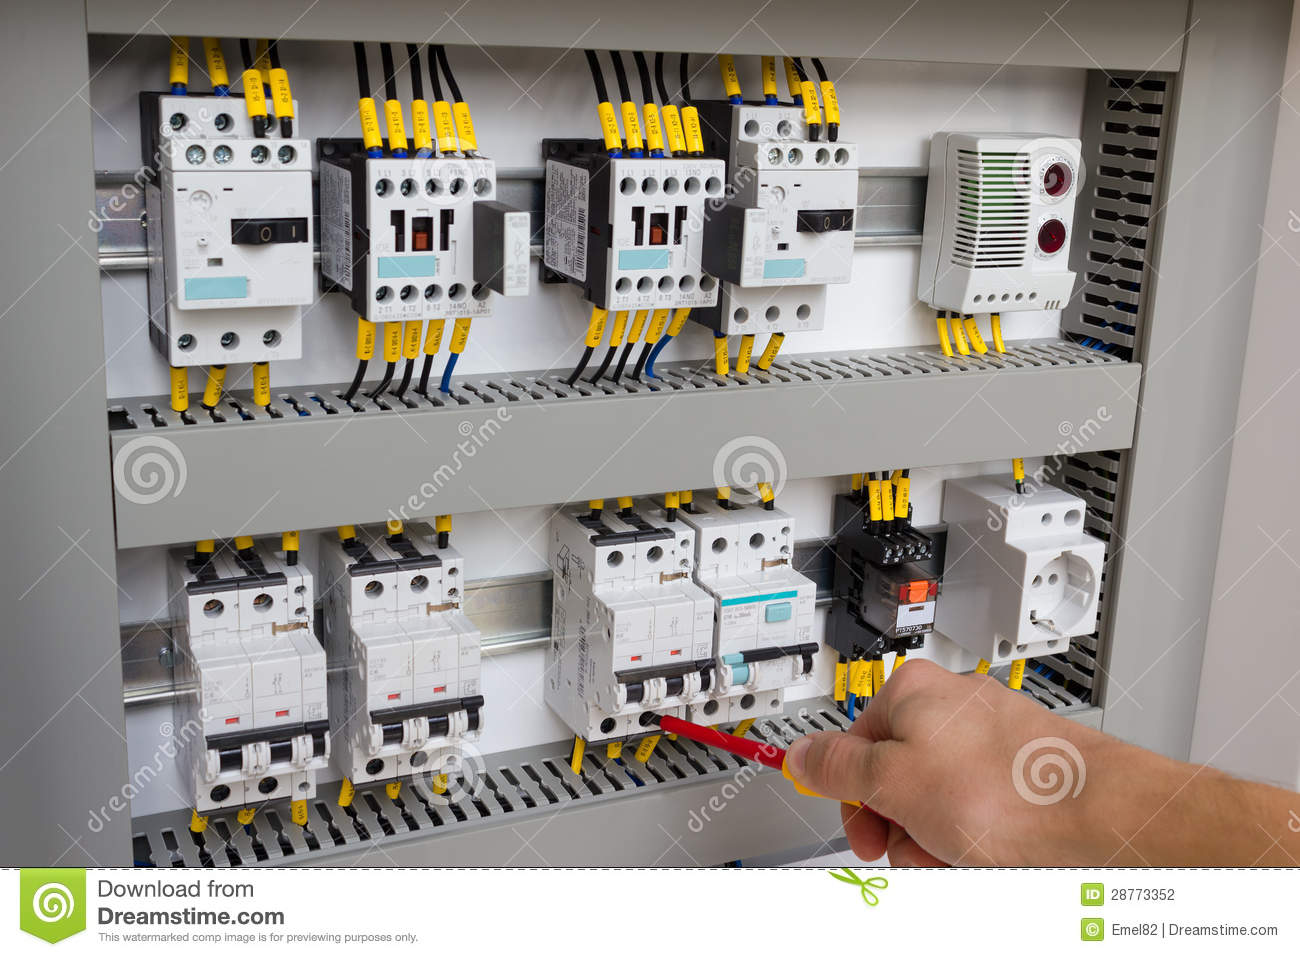 Tenant Advice Corner Keeping Apartment Fuse Boxes And Tempers From Being Blown In Your Mdu in addition Firesafe Pyro Fp200 P Cable Clip For Cafs152r Ccfs152r Red moreover Inside Storage Mix Dispensing Rooms as well Fire Alarm Circuit as well Germicidal Uv L s. on fire alarm wiring